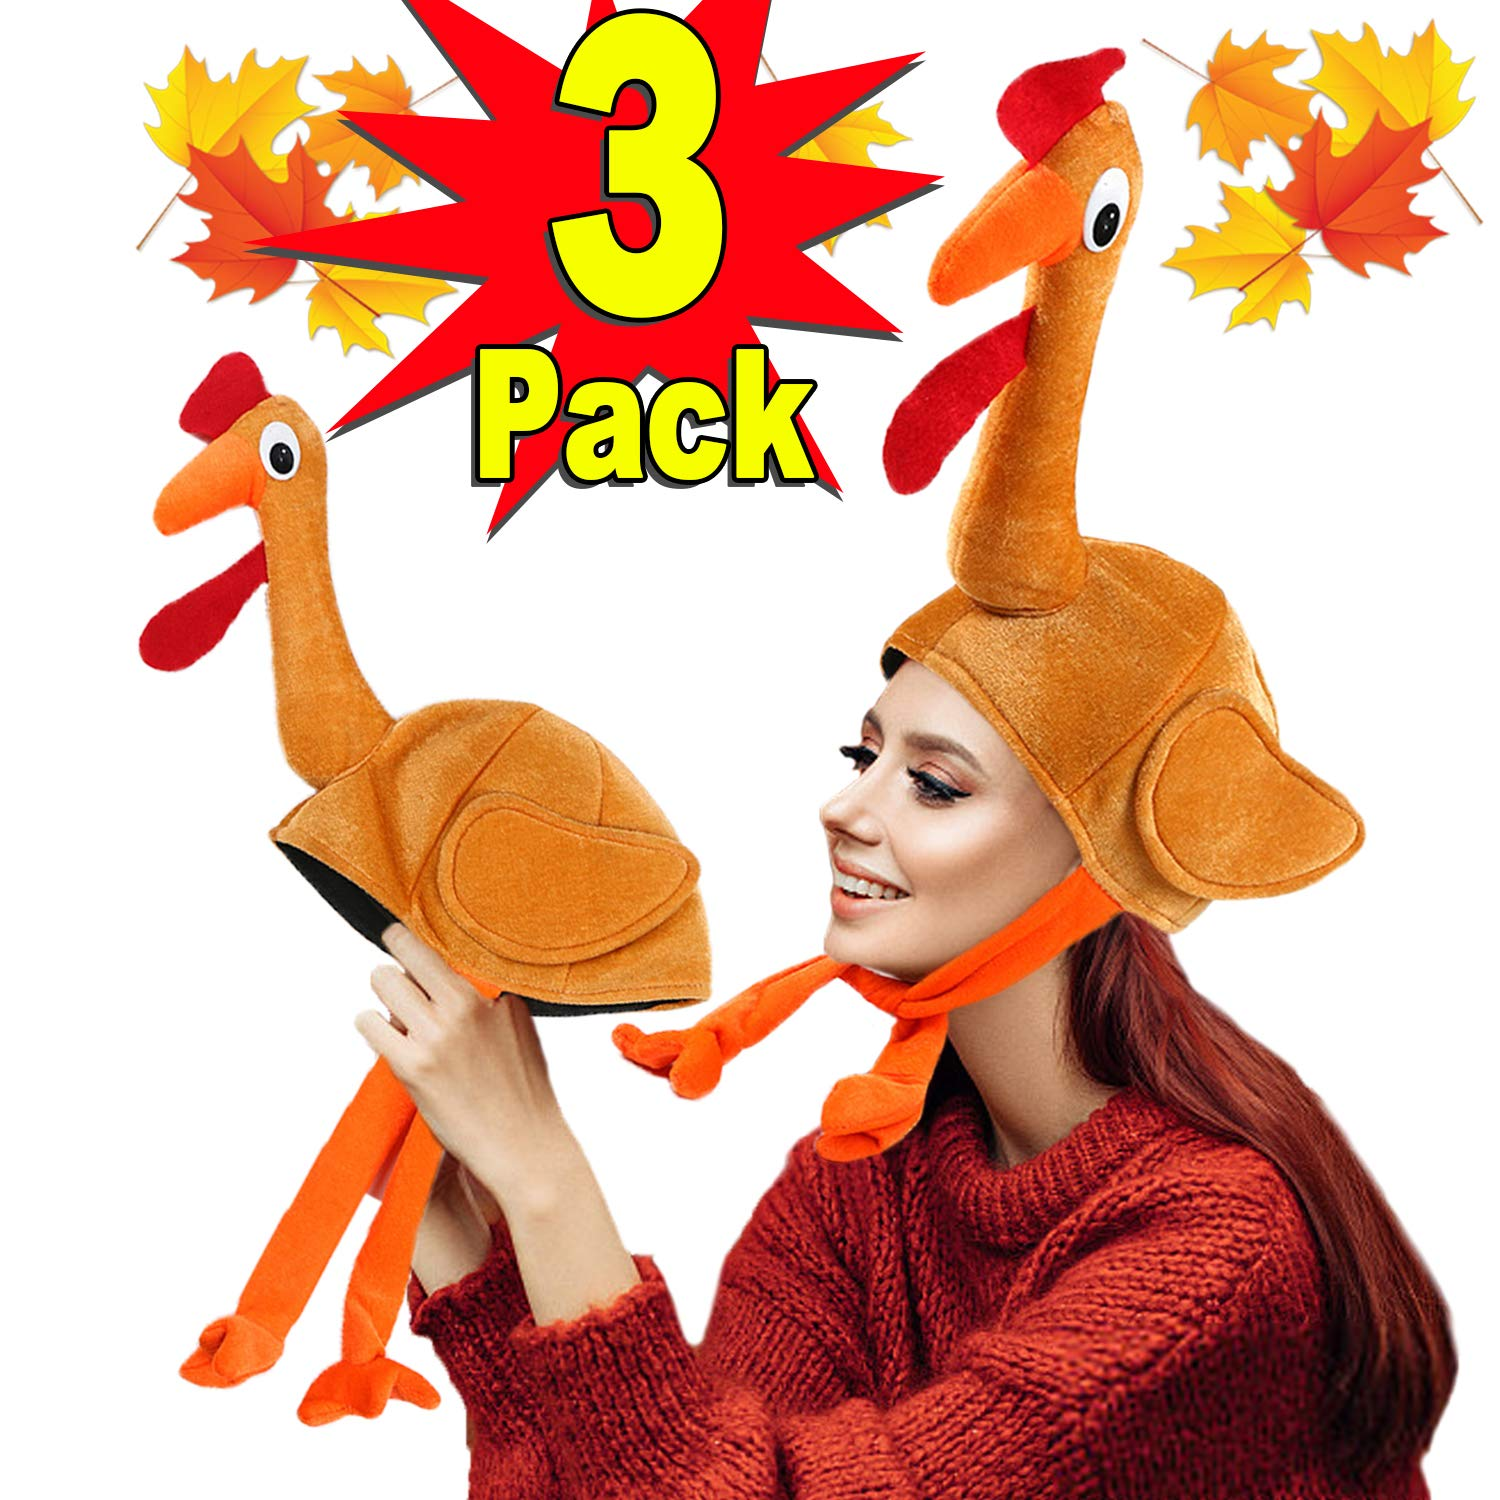 3 Pack Turkey Hats for Kids Woman Man Thanksgiving Hat With Head Thanksgiving Party Favors Supplies Fun Plump Turkey Hat Legs And Tail Fancy Dress Accessory Trot Accessory Toy for Holiday Gift by Funburg